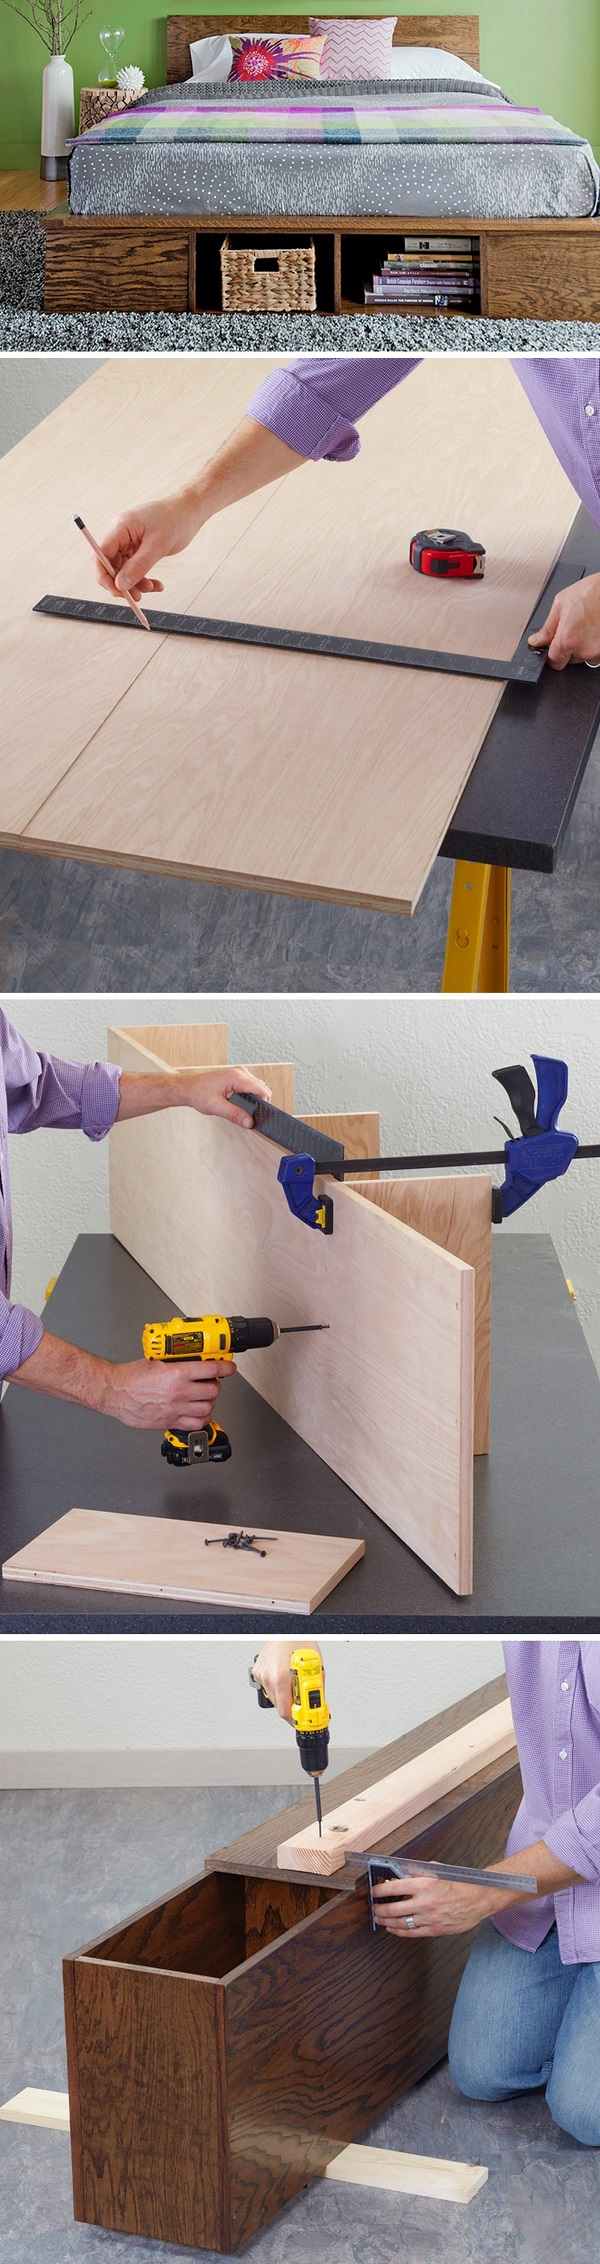 Check out the tutorial how to build a DIY platform storage bed